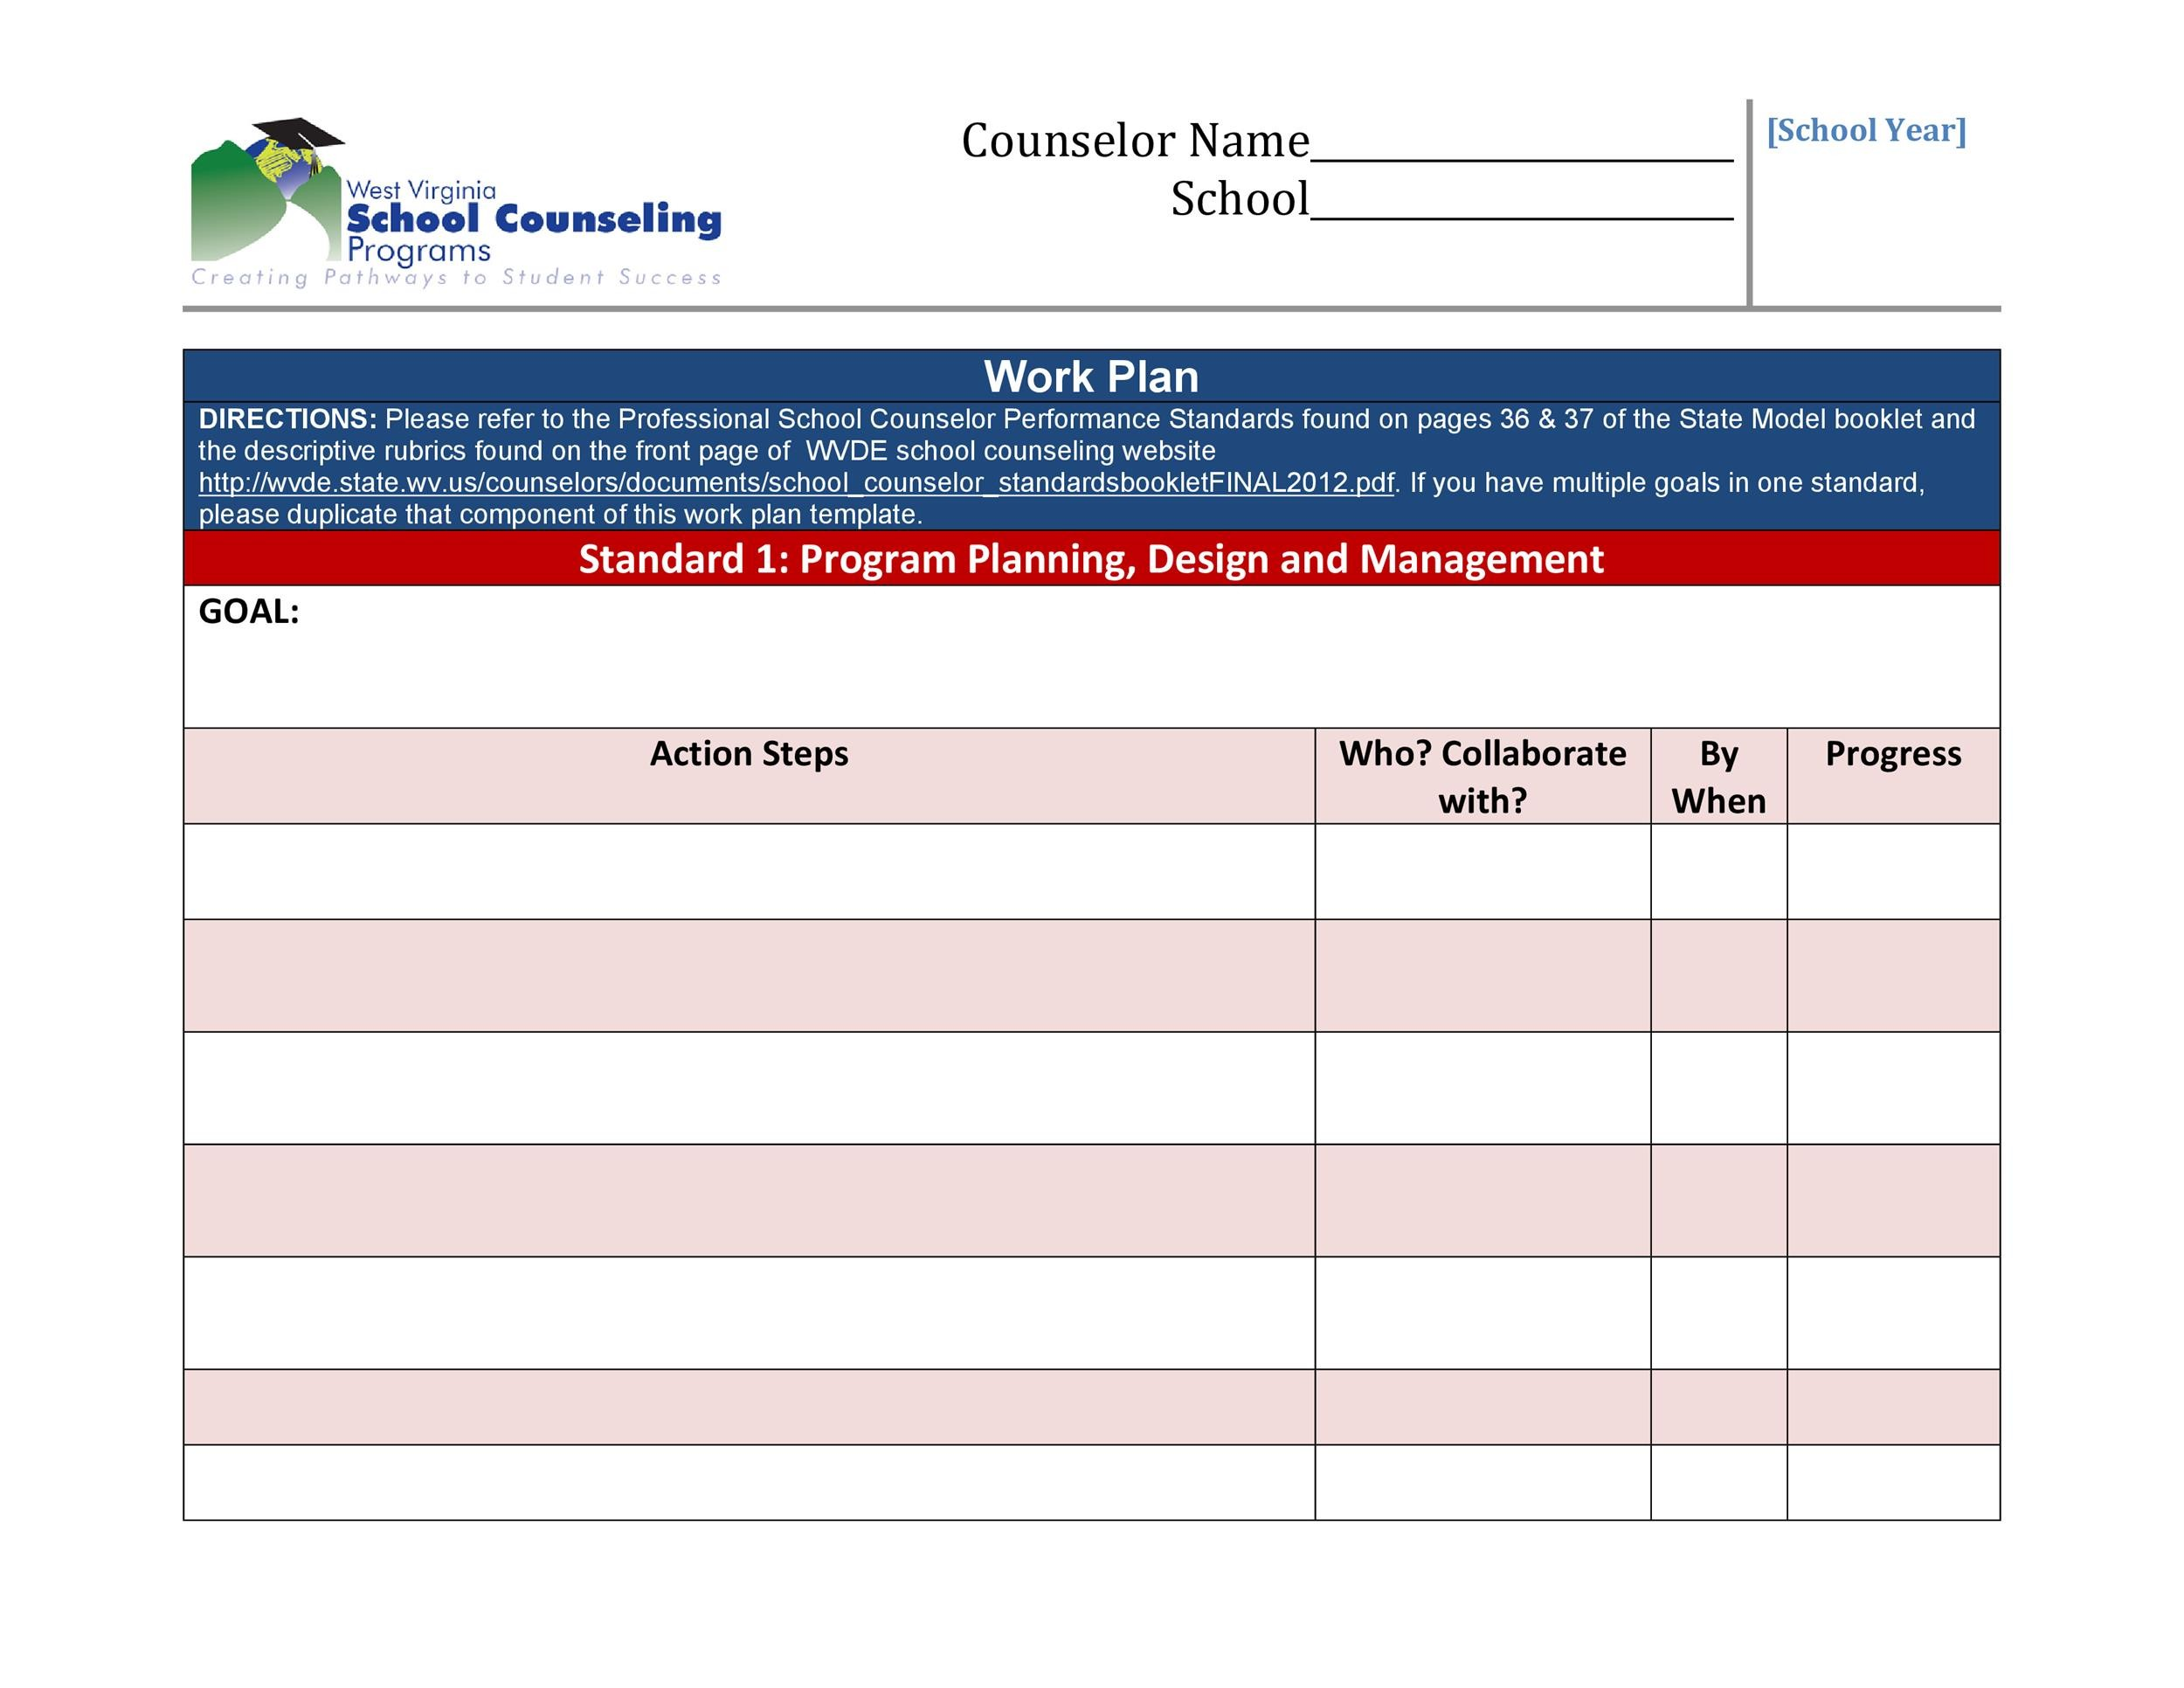 Work Plan 40 Great Templates Samples Excel Word ᐅ Template Lab